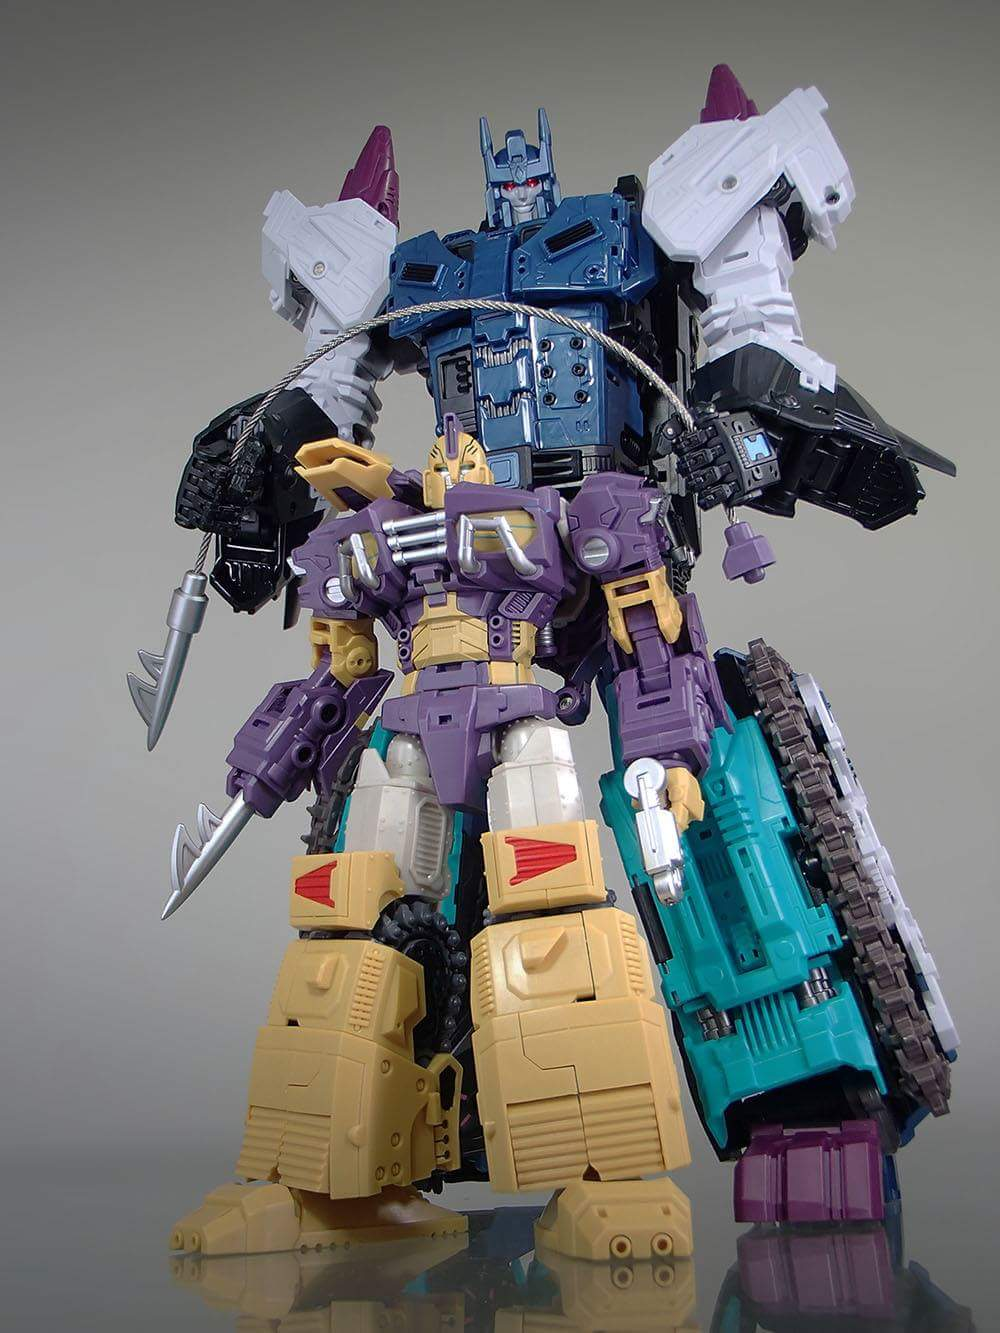 [Mastermind Creations] Produit Tiers - R-17 Carnifex - aka Overlord (TF Masterforce) - Page 3 Suxz6SNE